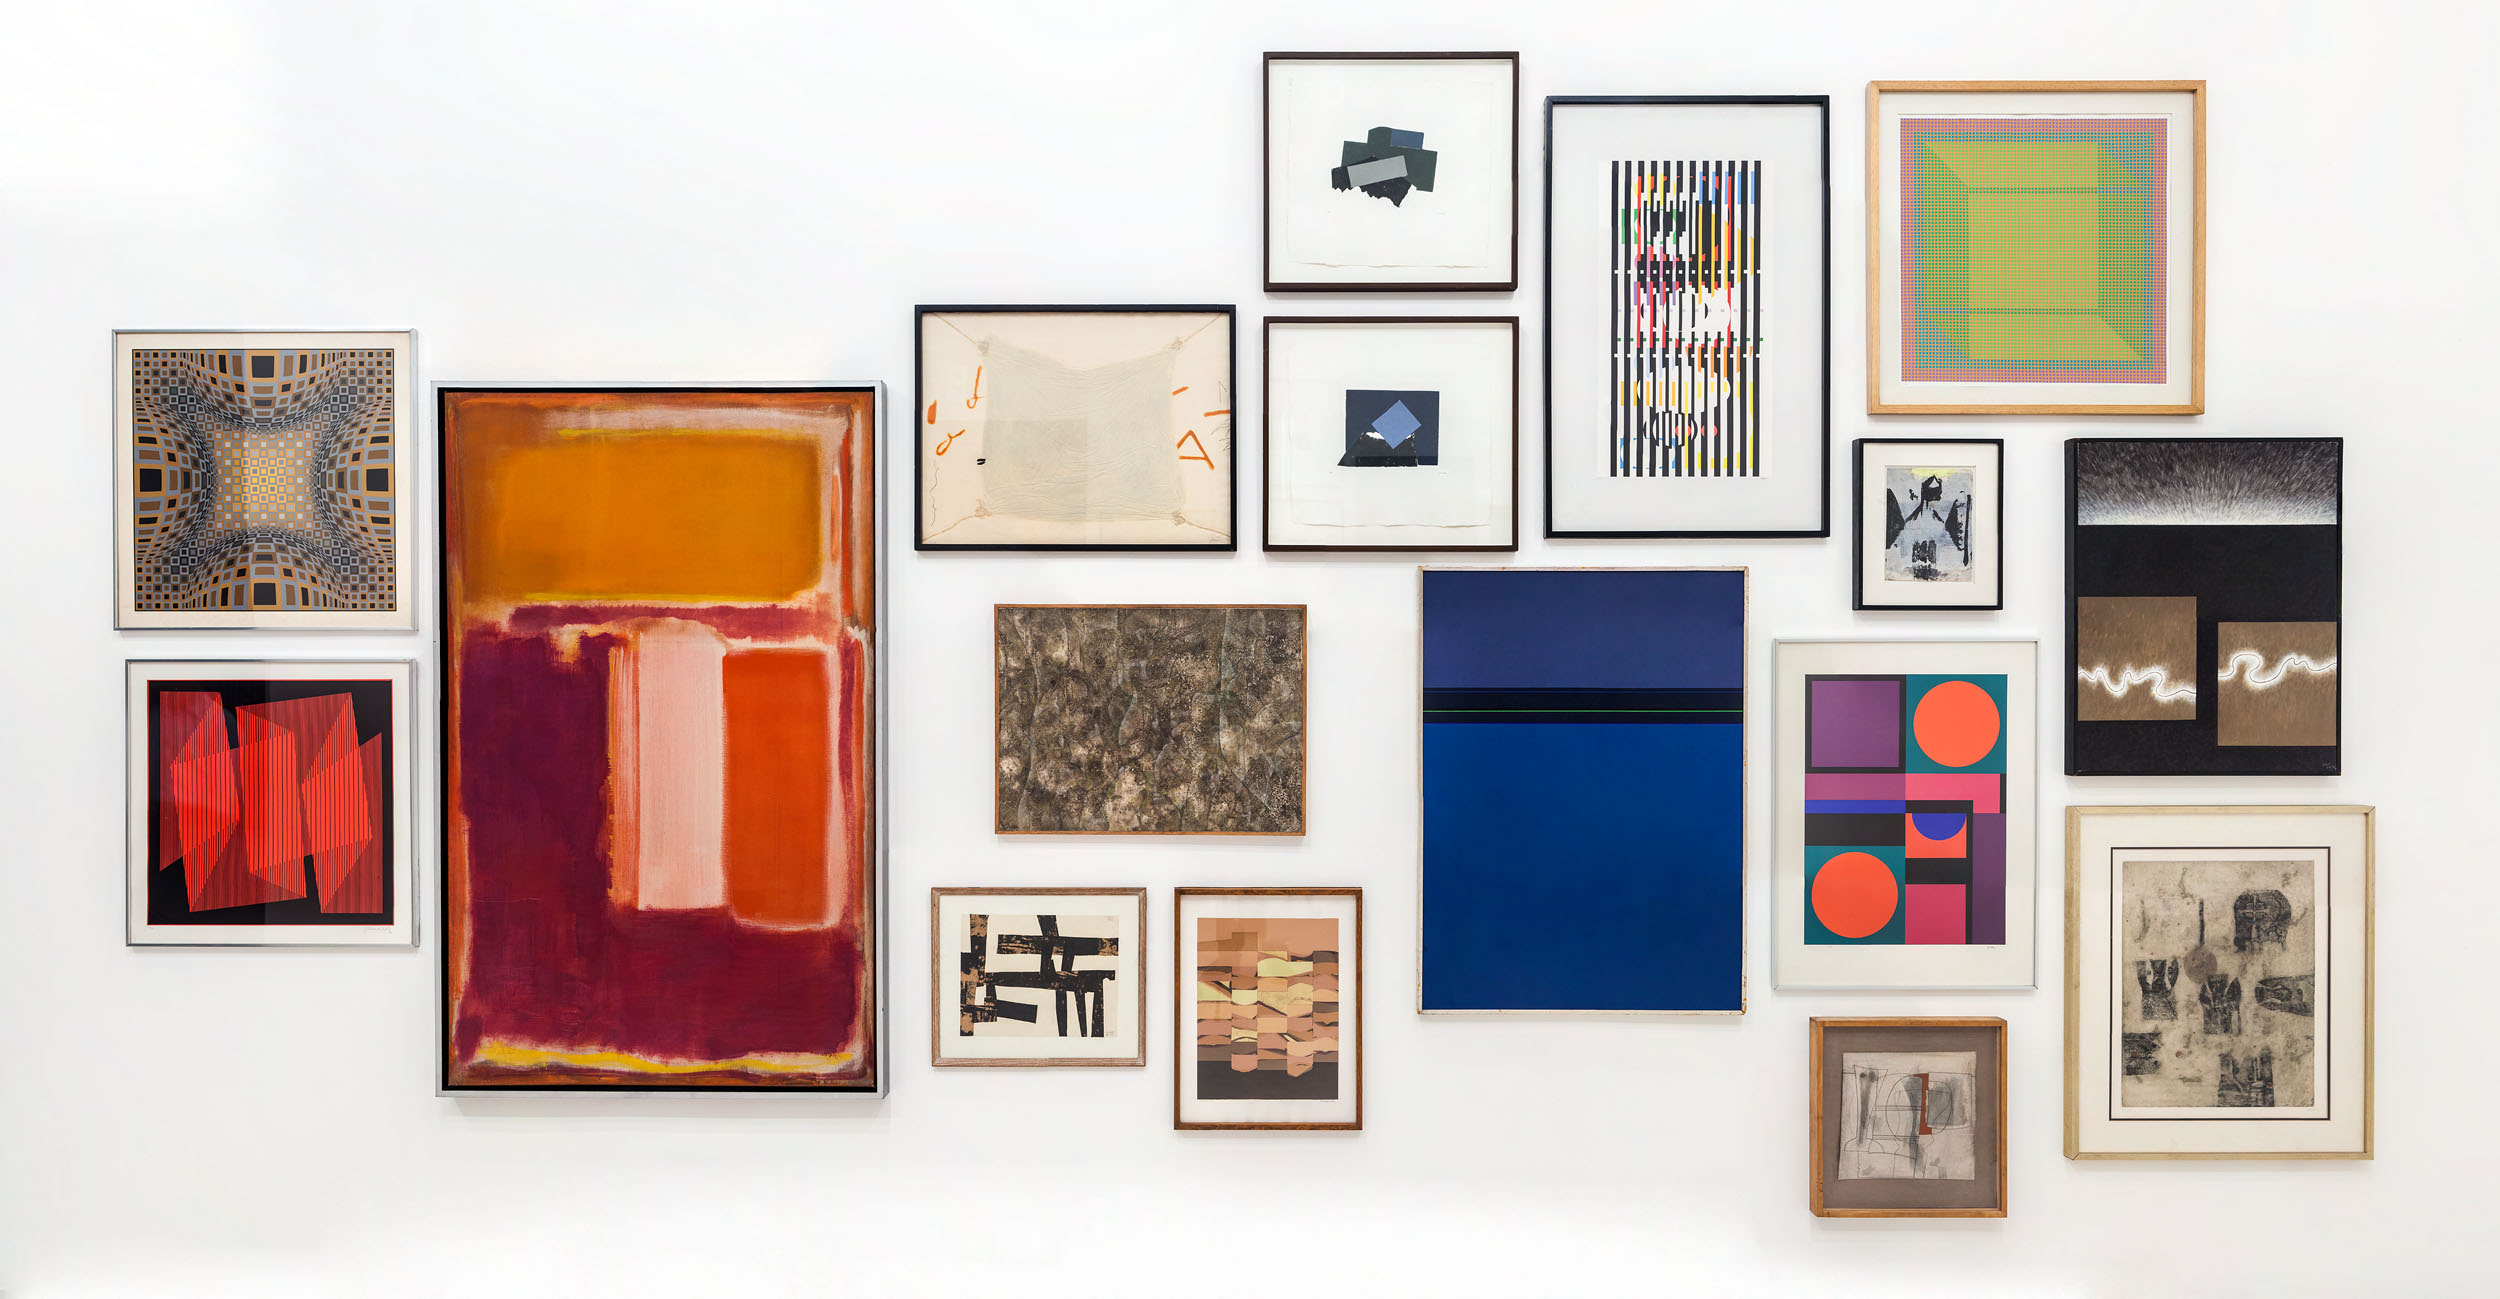 Documentation of wall A as it was during shooting. All artworks selected from the permanent collection of the Museo Tamayo. The single painting in the middle is replaced by the screen for the installation